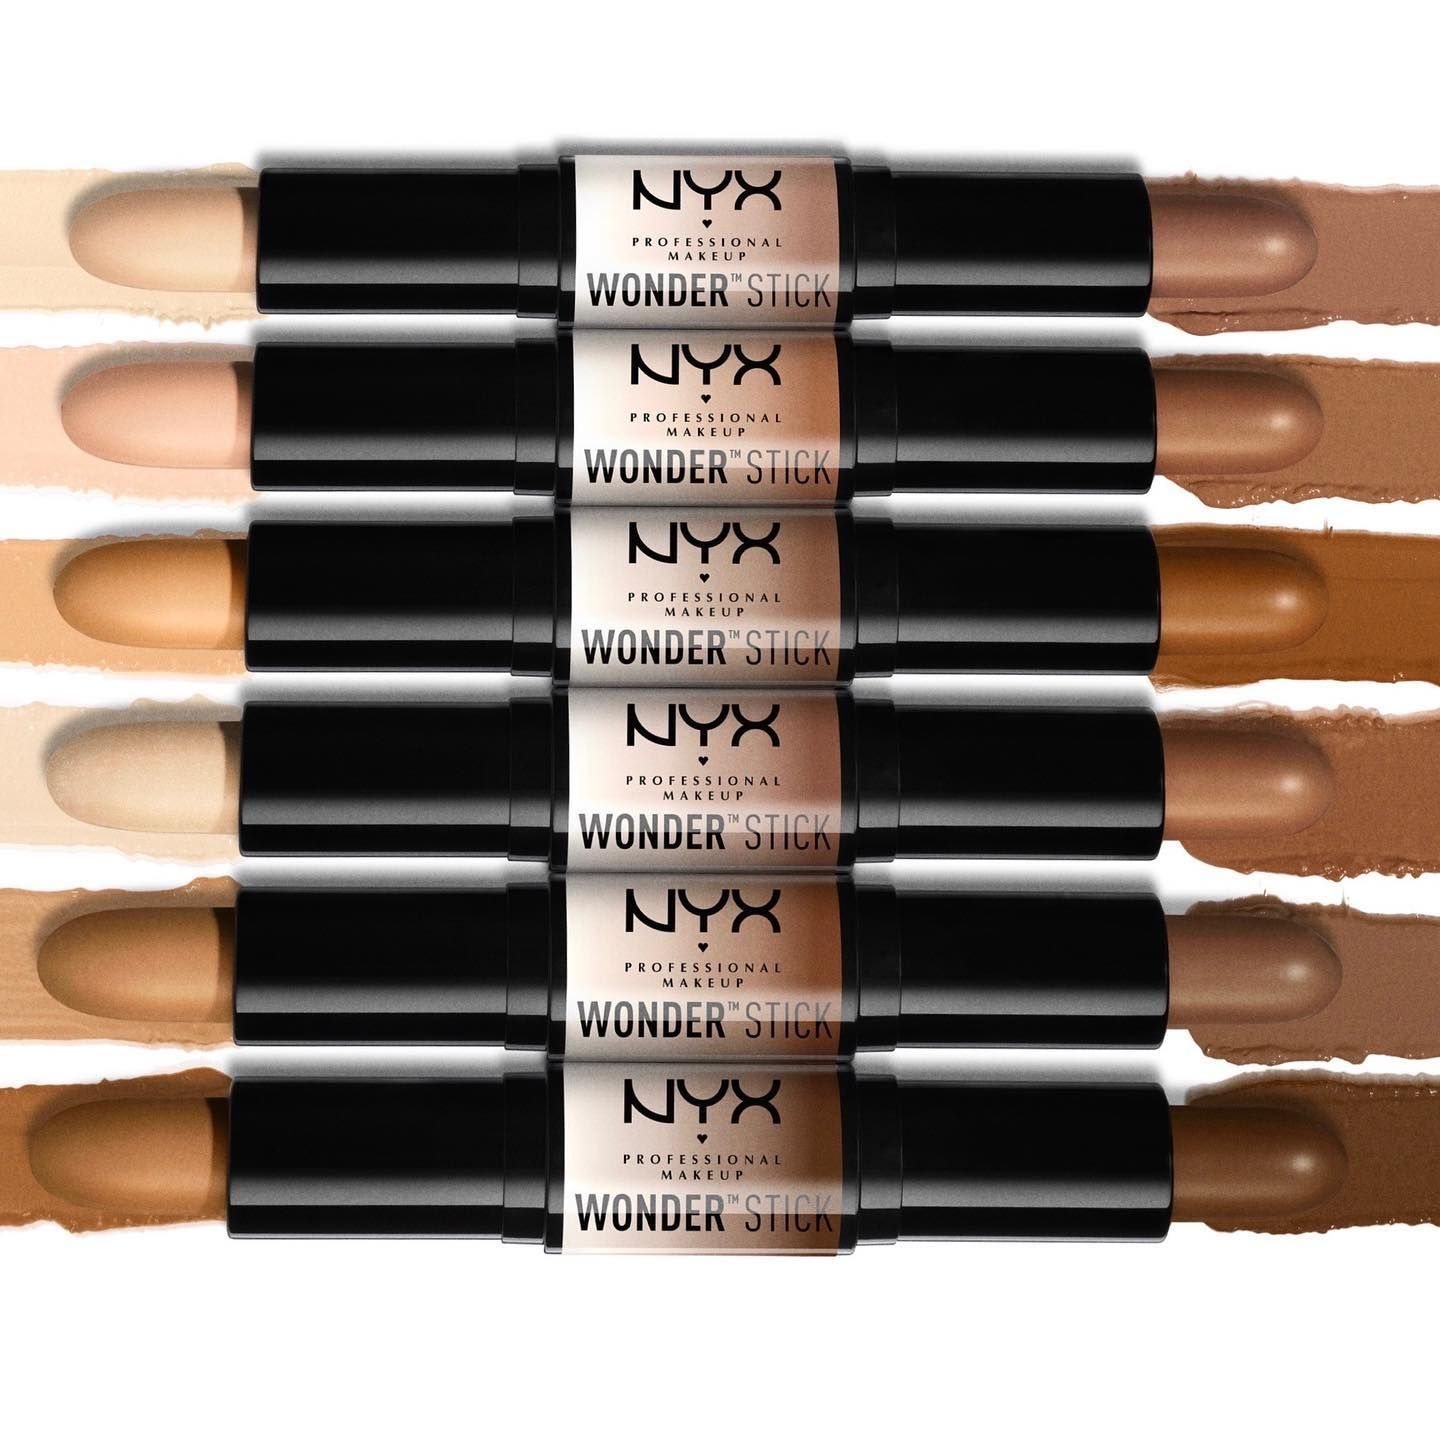 Wonder Stick Nyx Professional Makeup Nyx Professional Makeup Cream Highlighter Professional Makeup